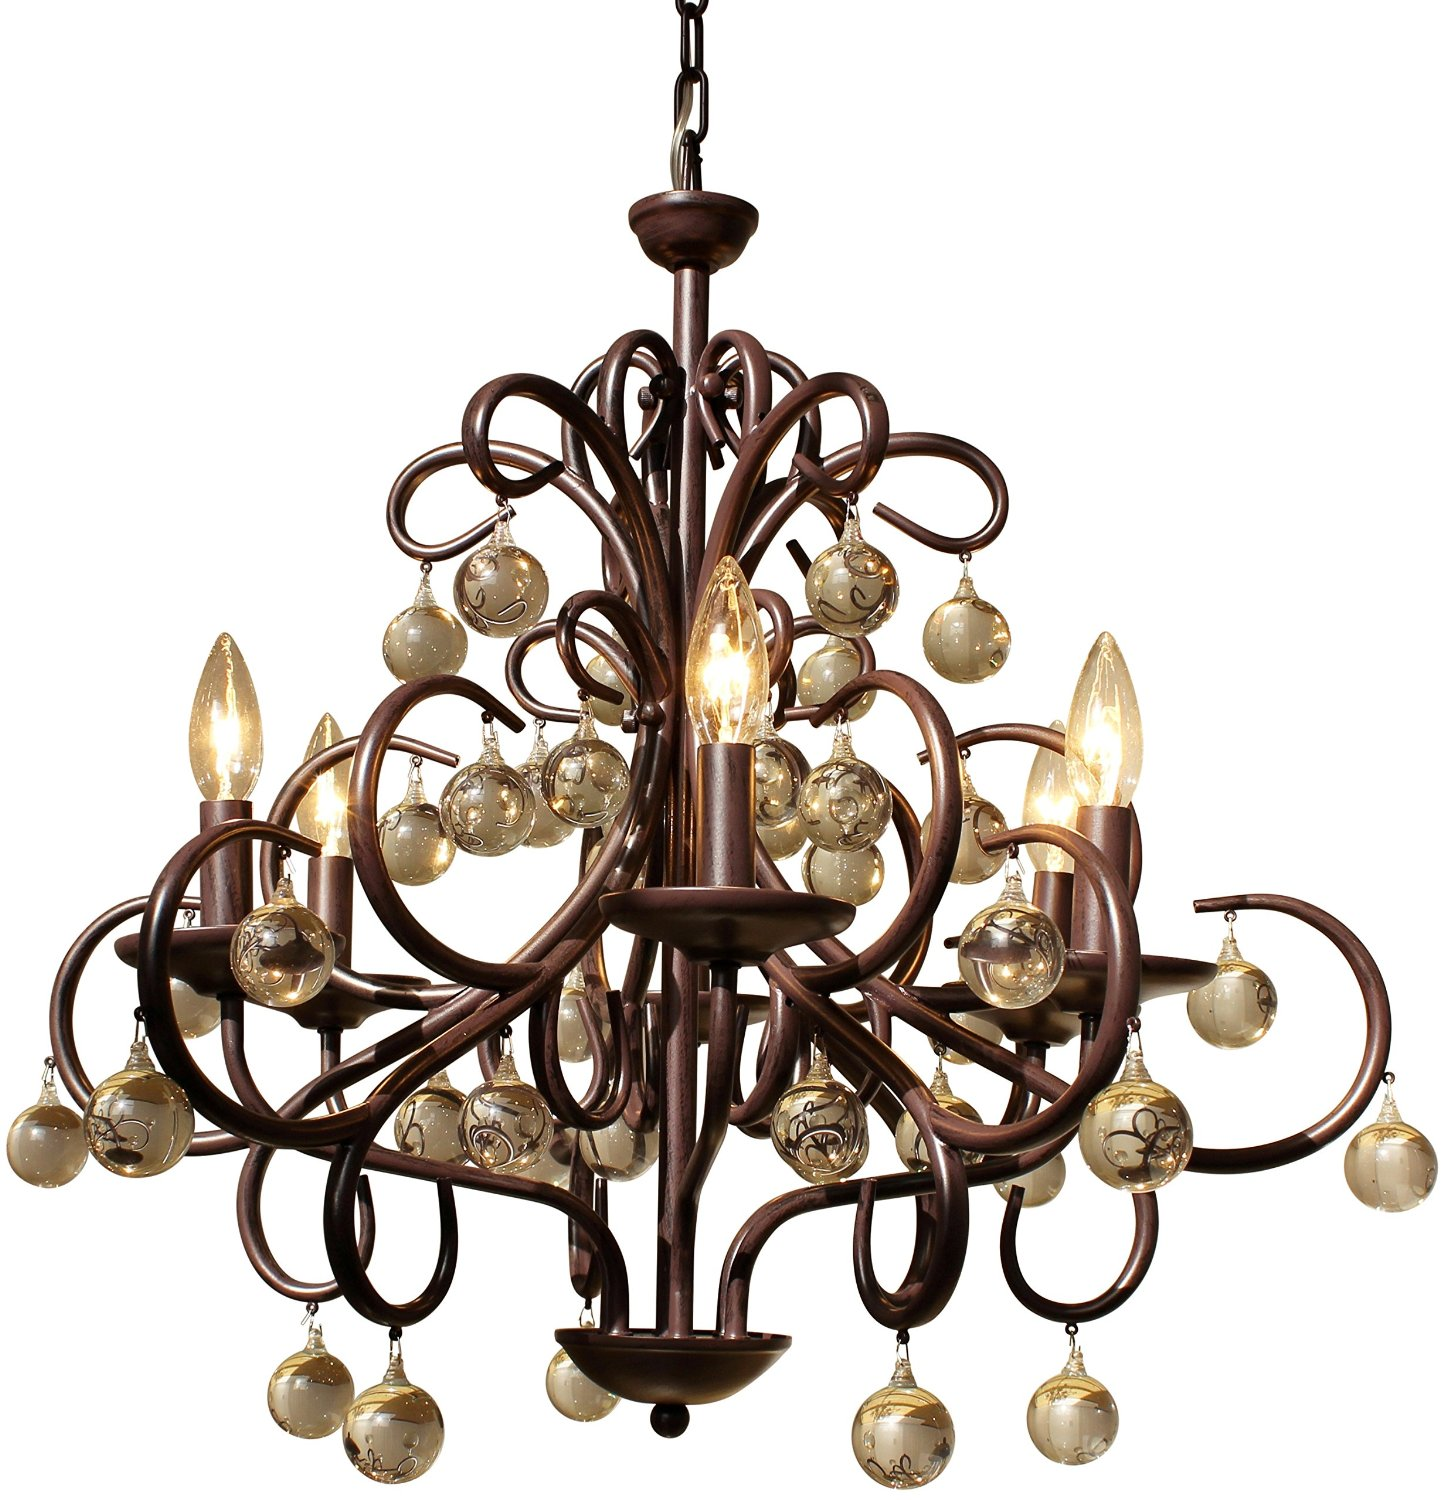 Pottery Barn Bellora Chandelier Reviews: The Right-On Mom Vegan Mom Blog: Pottery Barn Bellora